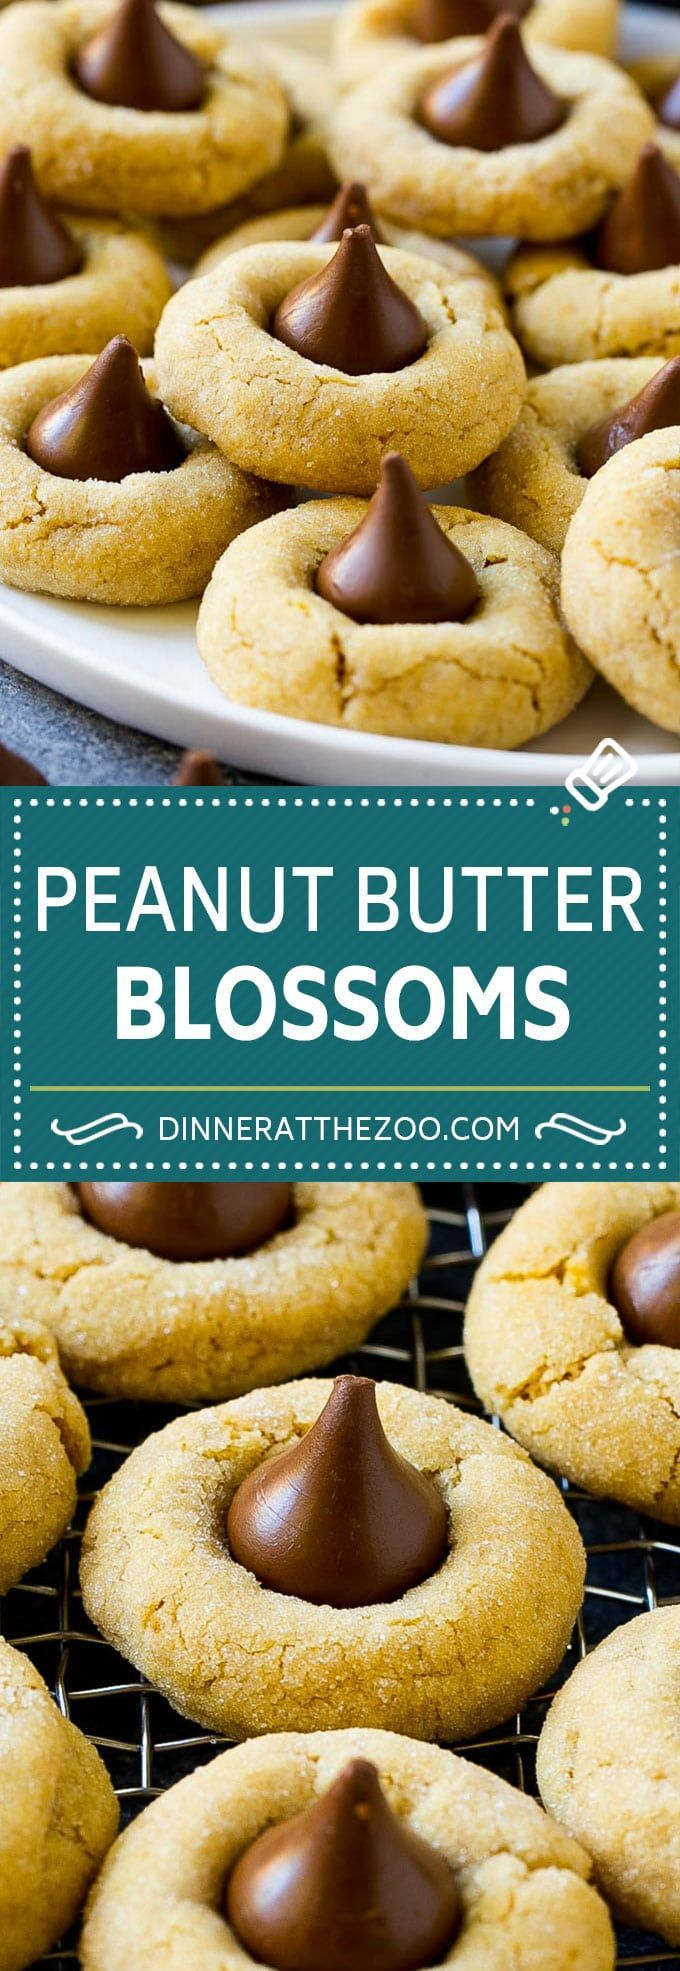 Peanut Butter Blossoms - Dinner at the Zoo